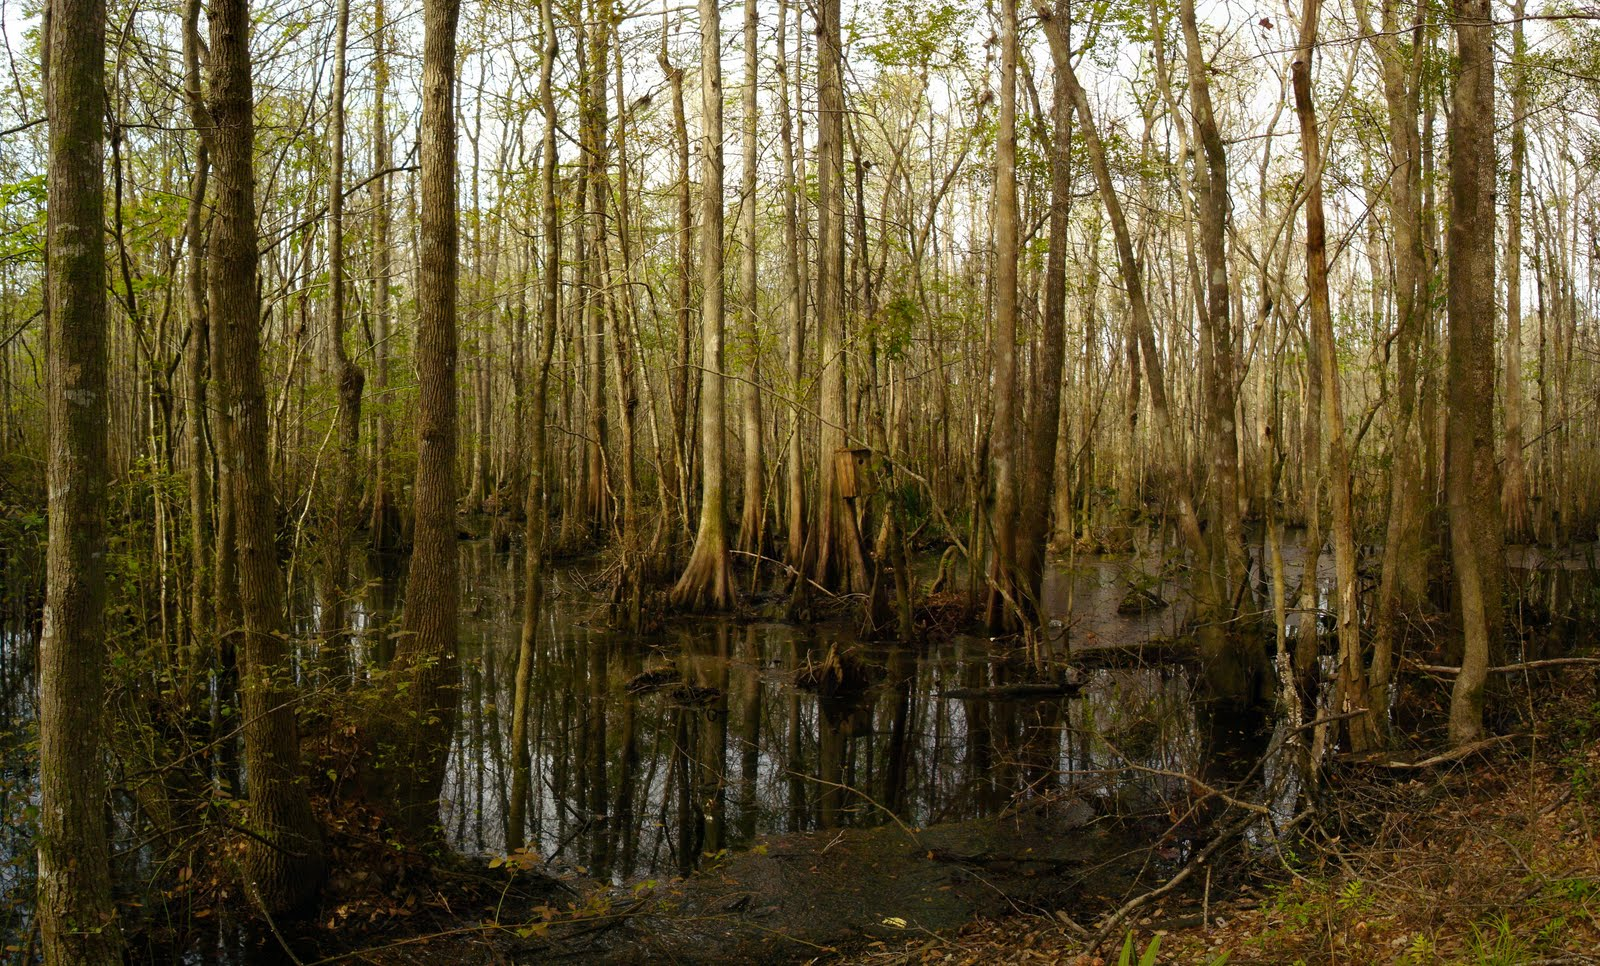 Heart of the Swamp